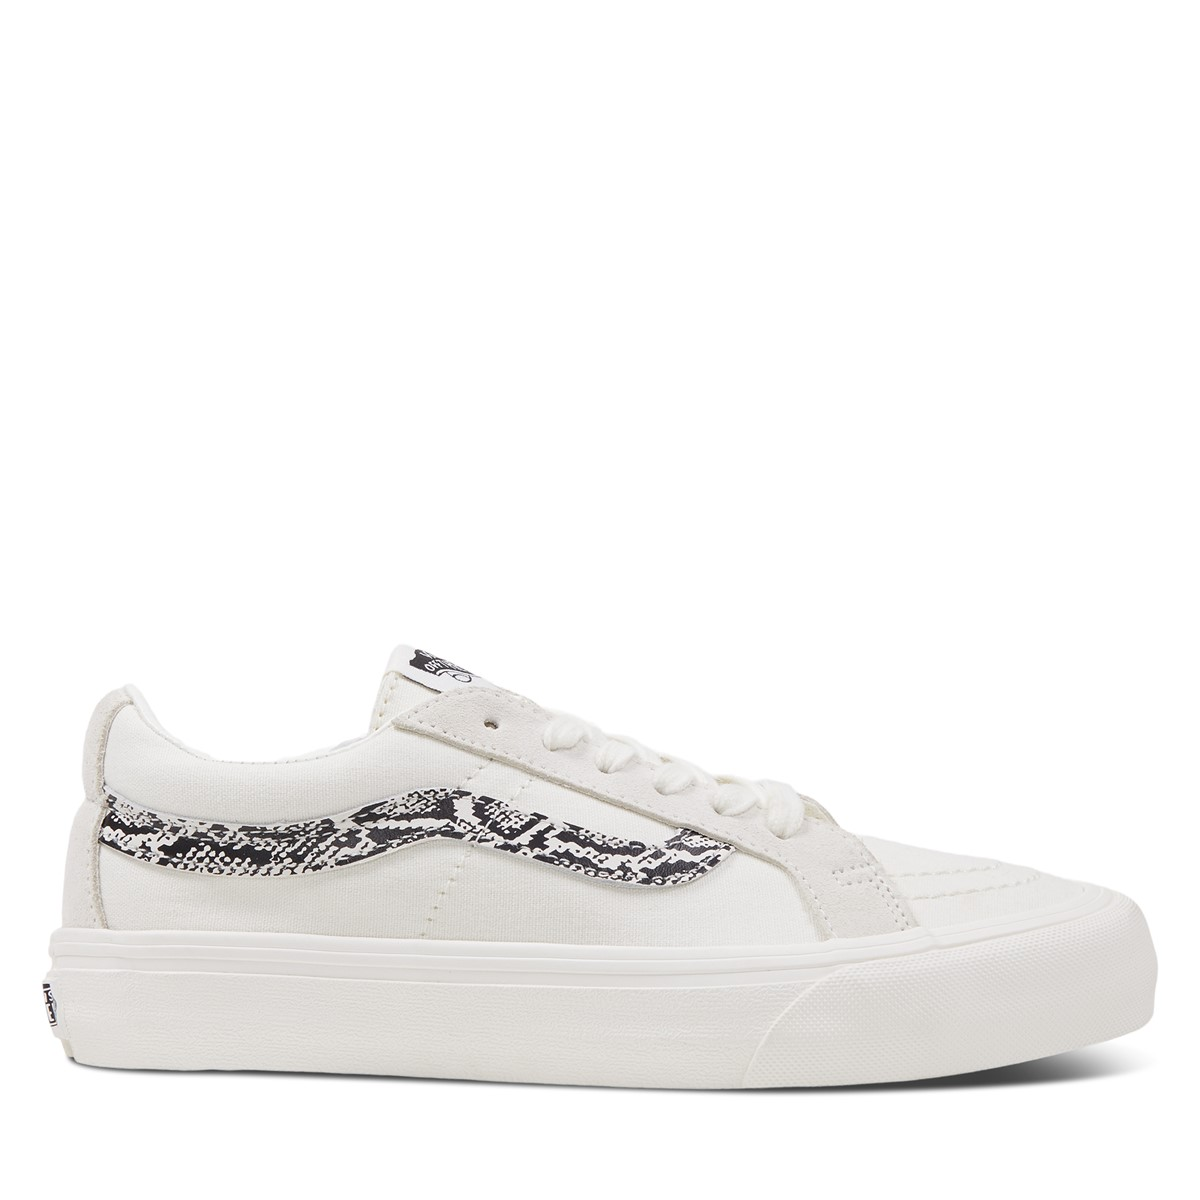 Women's Sk8 Low Pro Skate Sneakers in Off-White